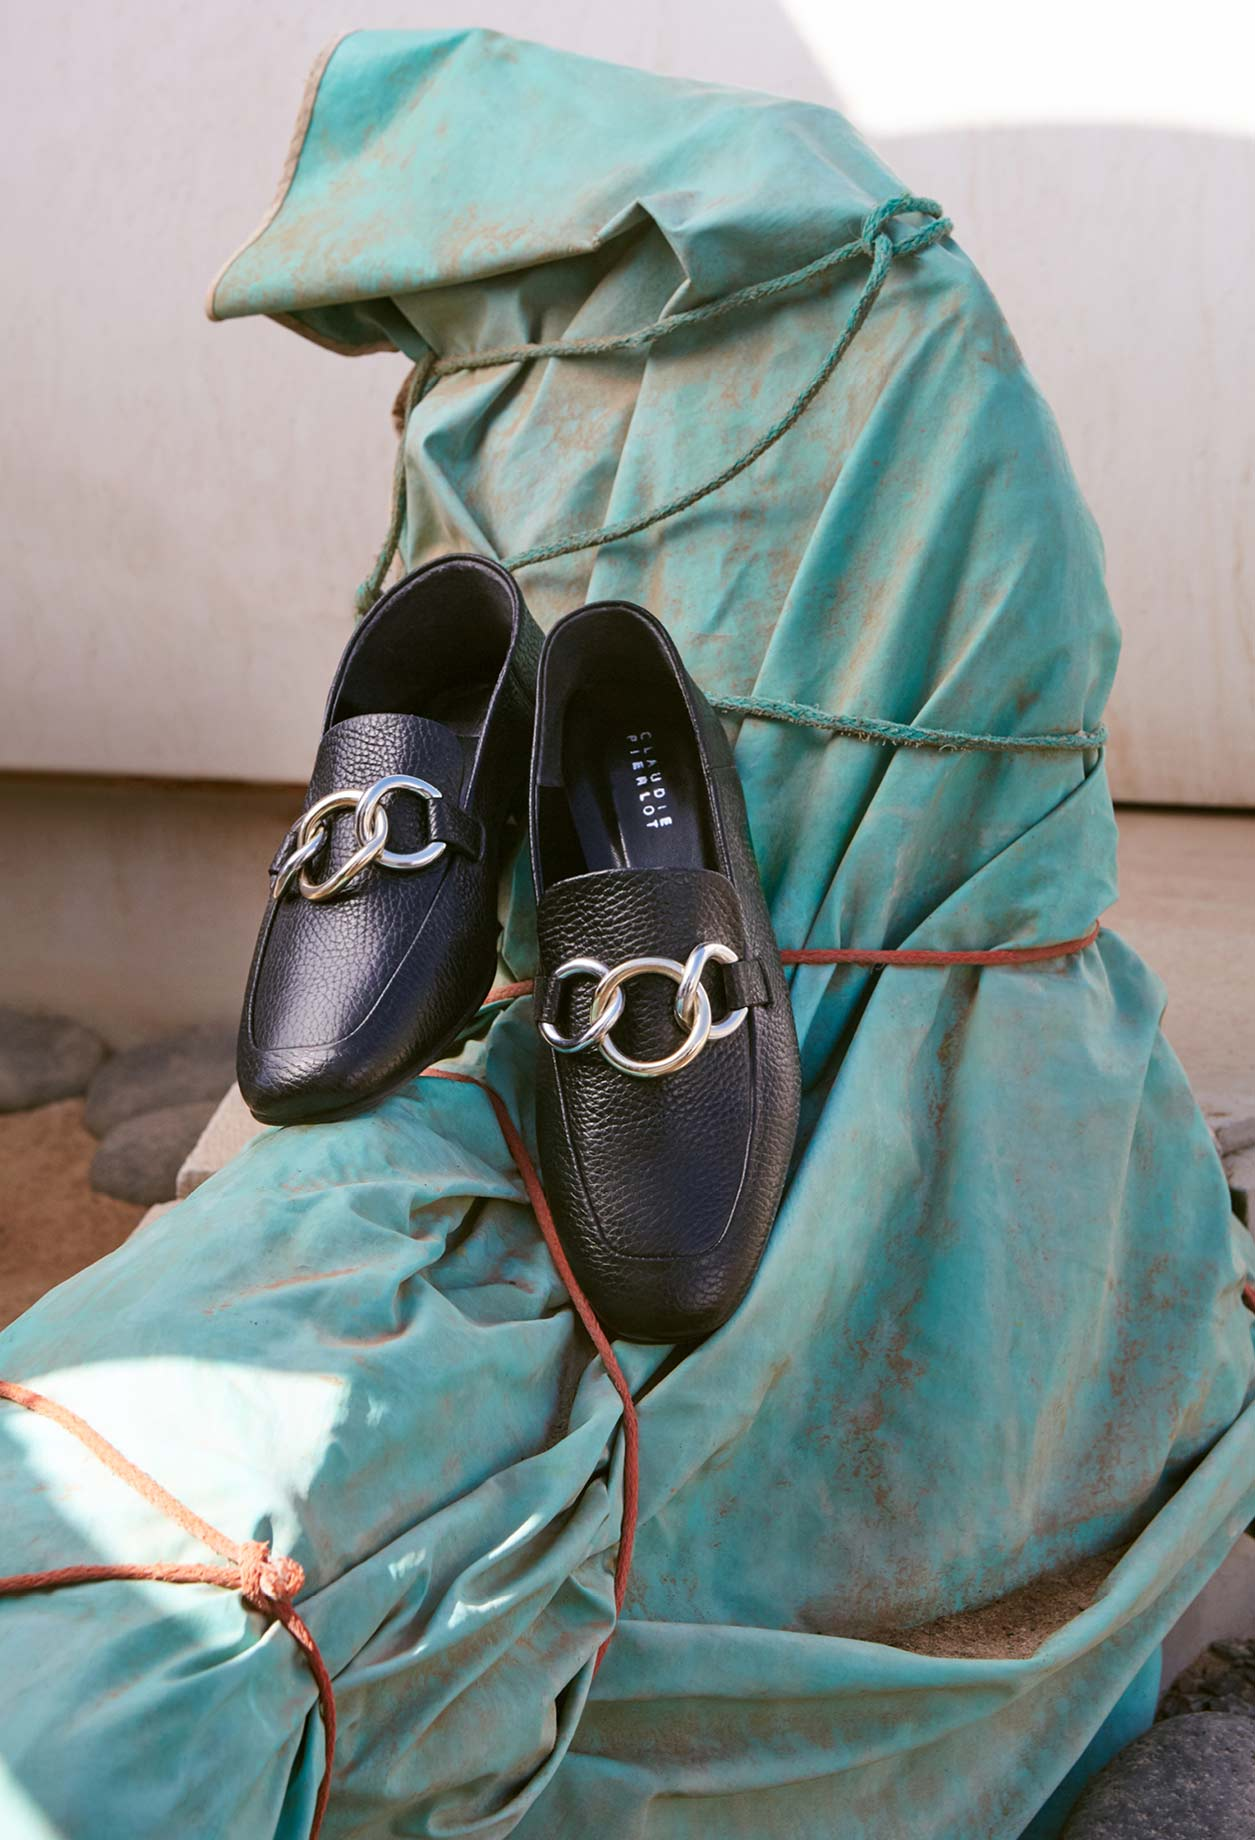 Loafers with silver chains